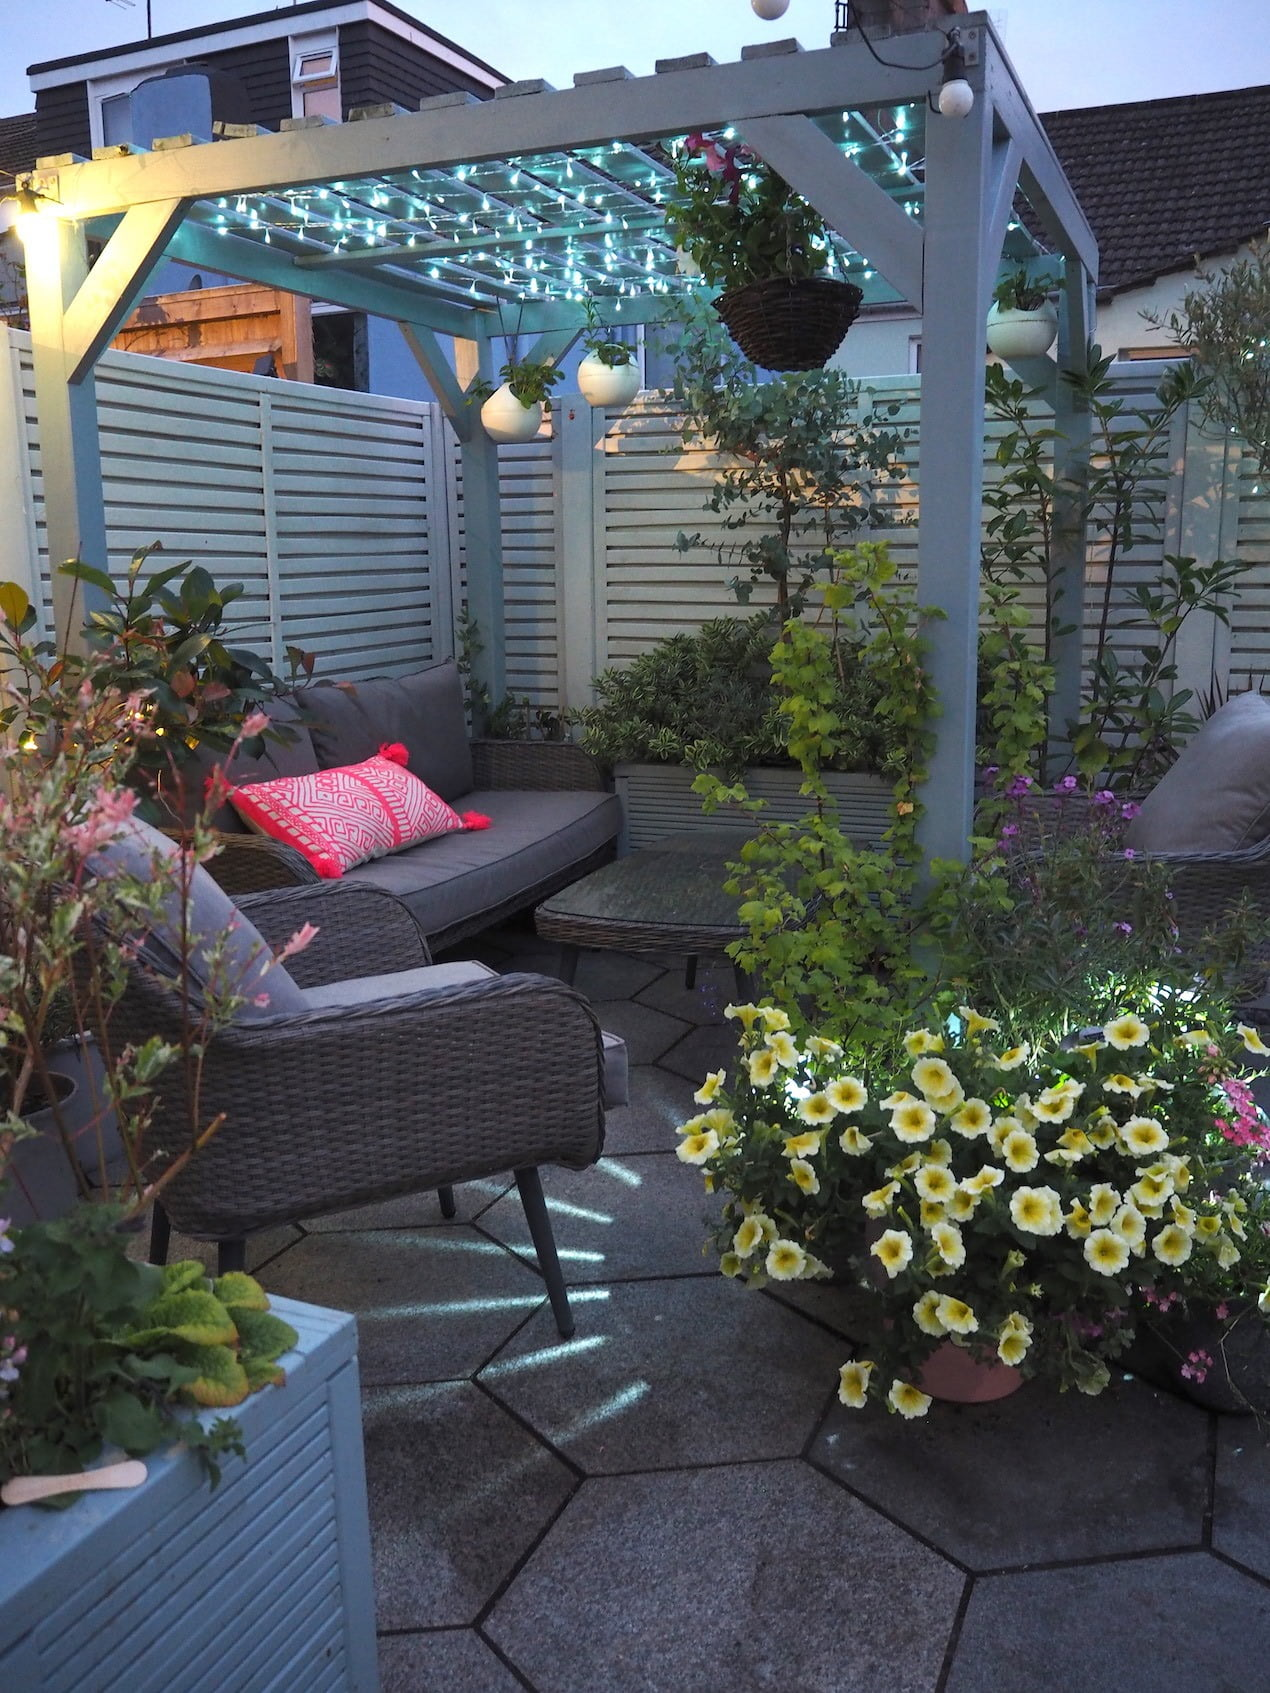 Try These 8 Pretty Garden Lighting Ideas - WeLoveHome - Home